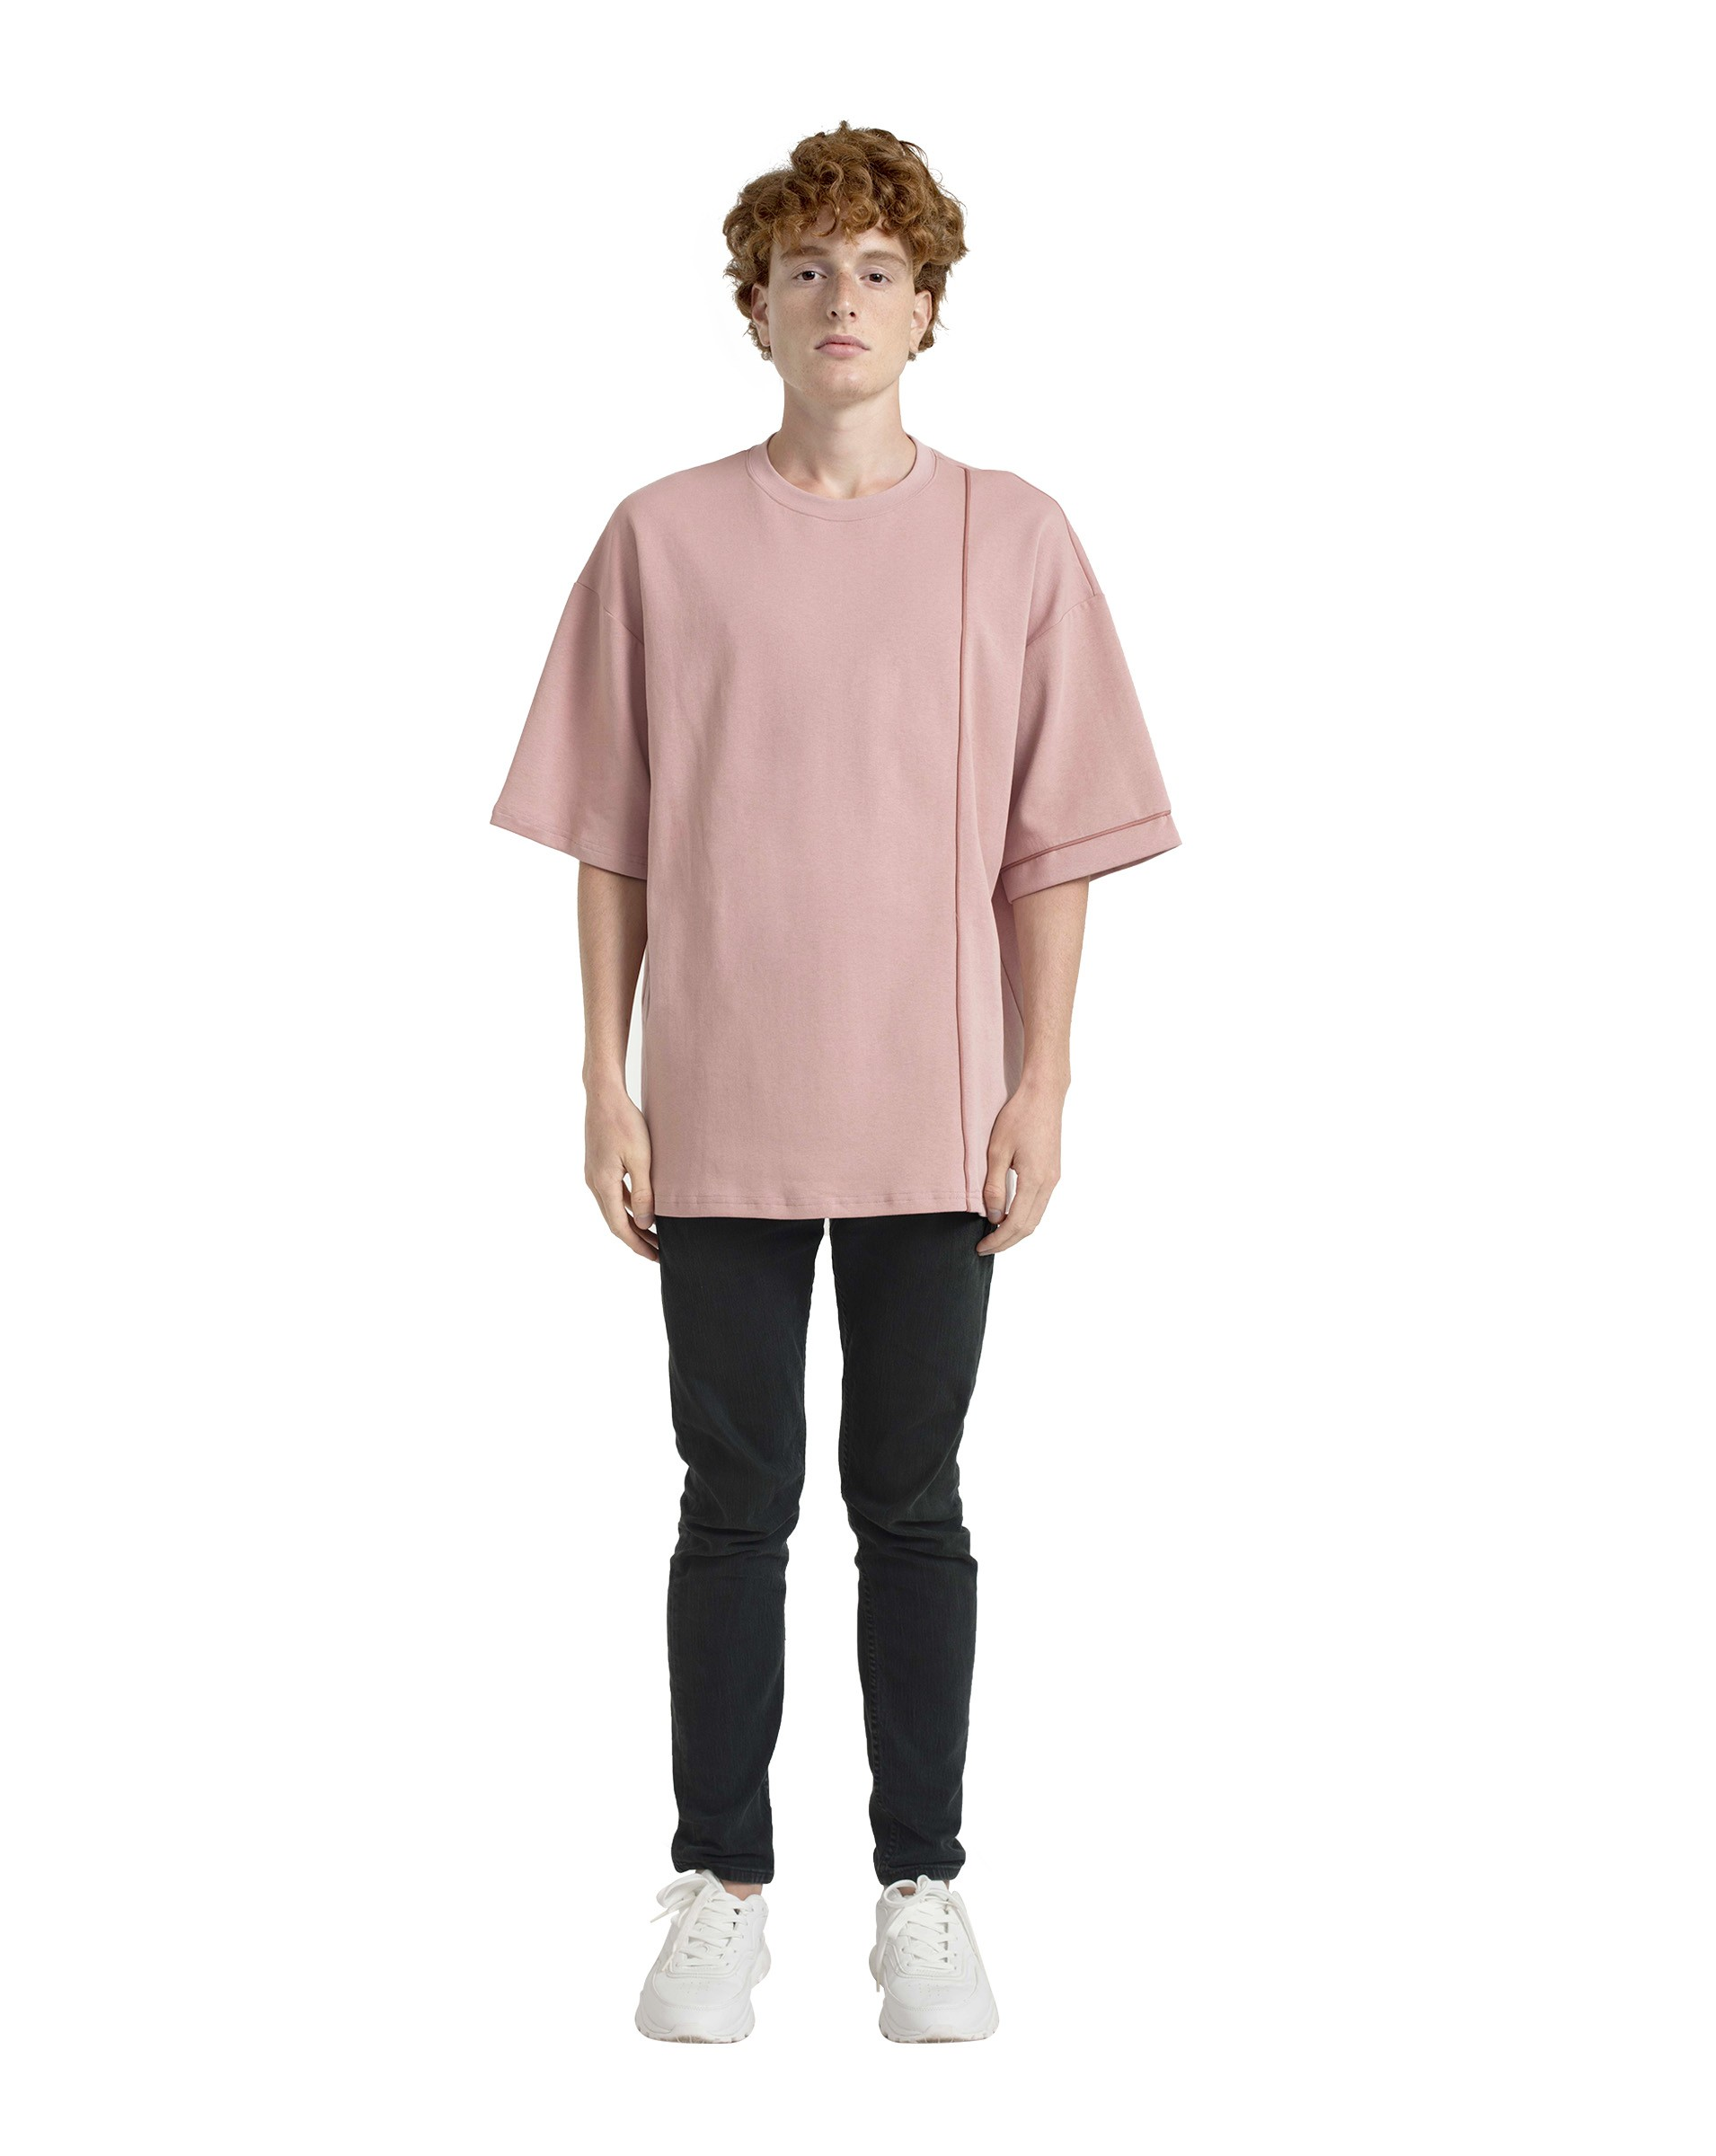 Contrast-Piped T-shirt (Unisex)